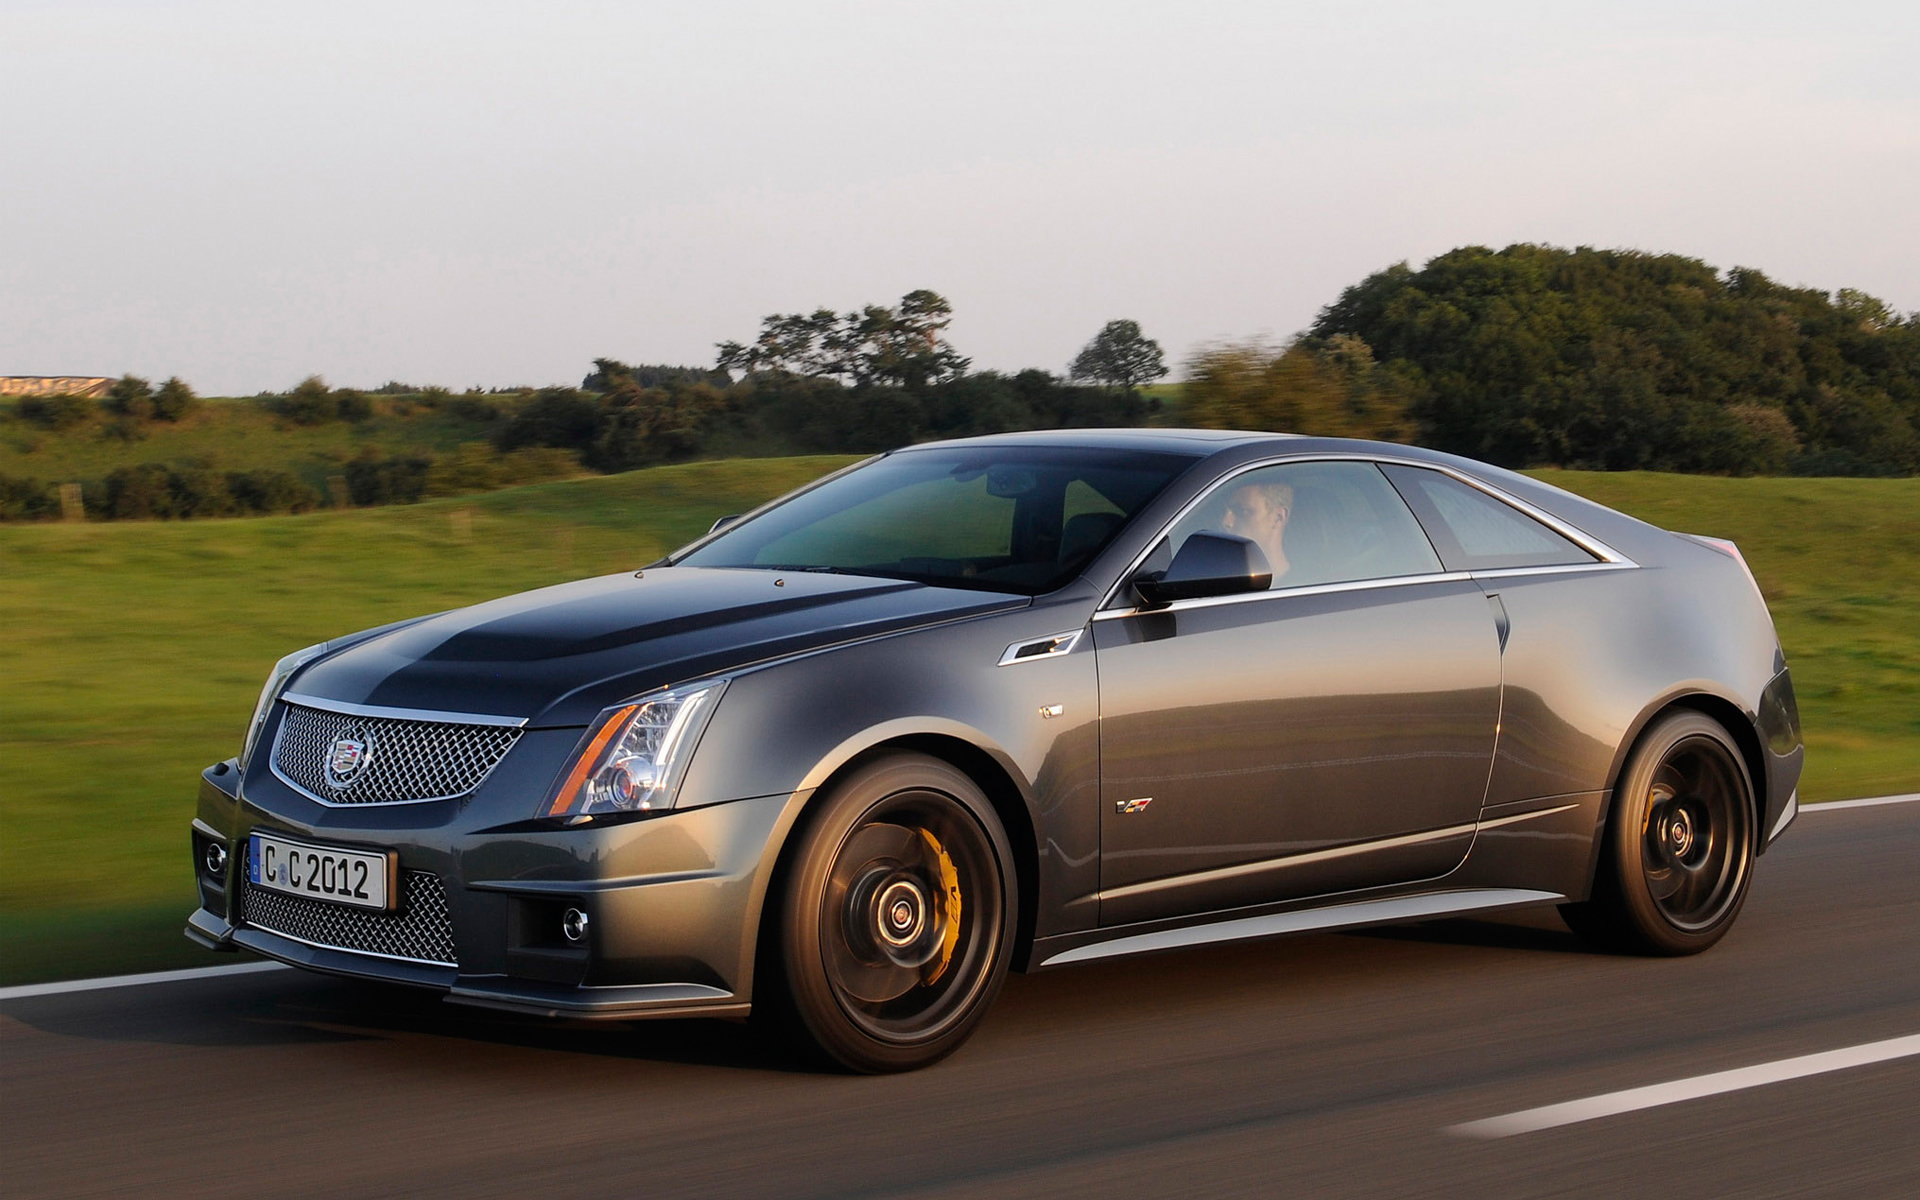 2014 cadillac cts v coupe information and photos zombiedrive. Black Bedroom Furniture Sets. Home Design Ideas